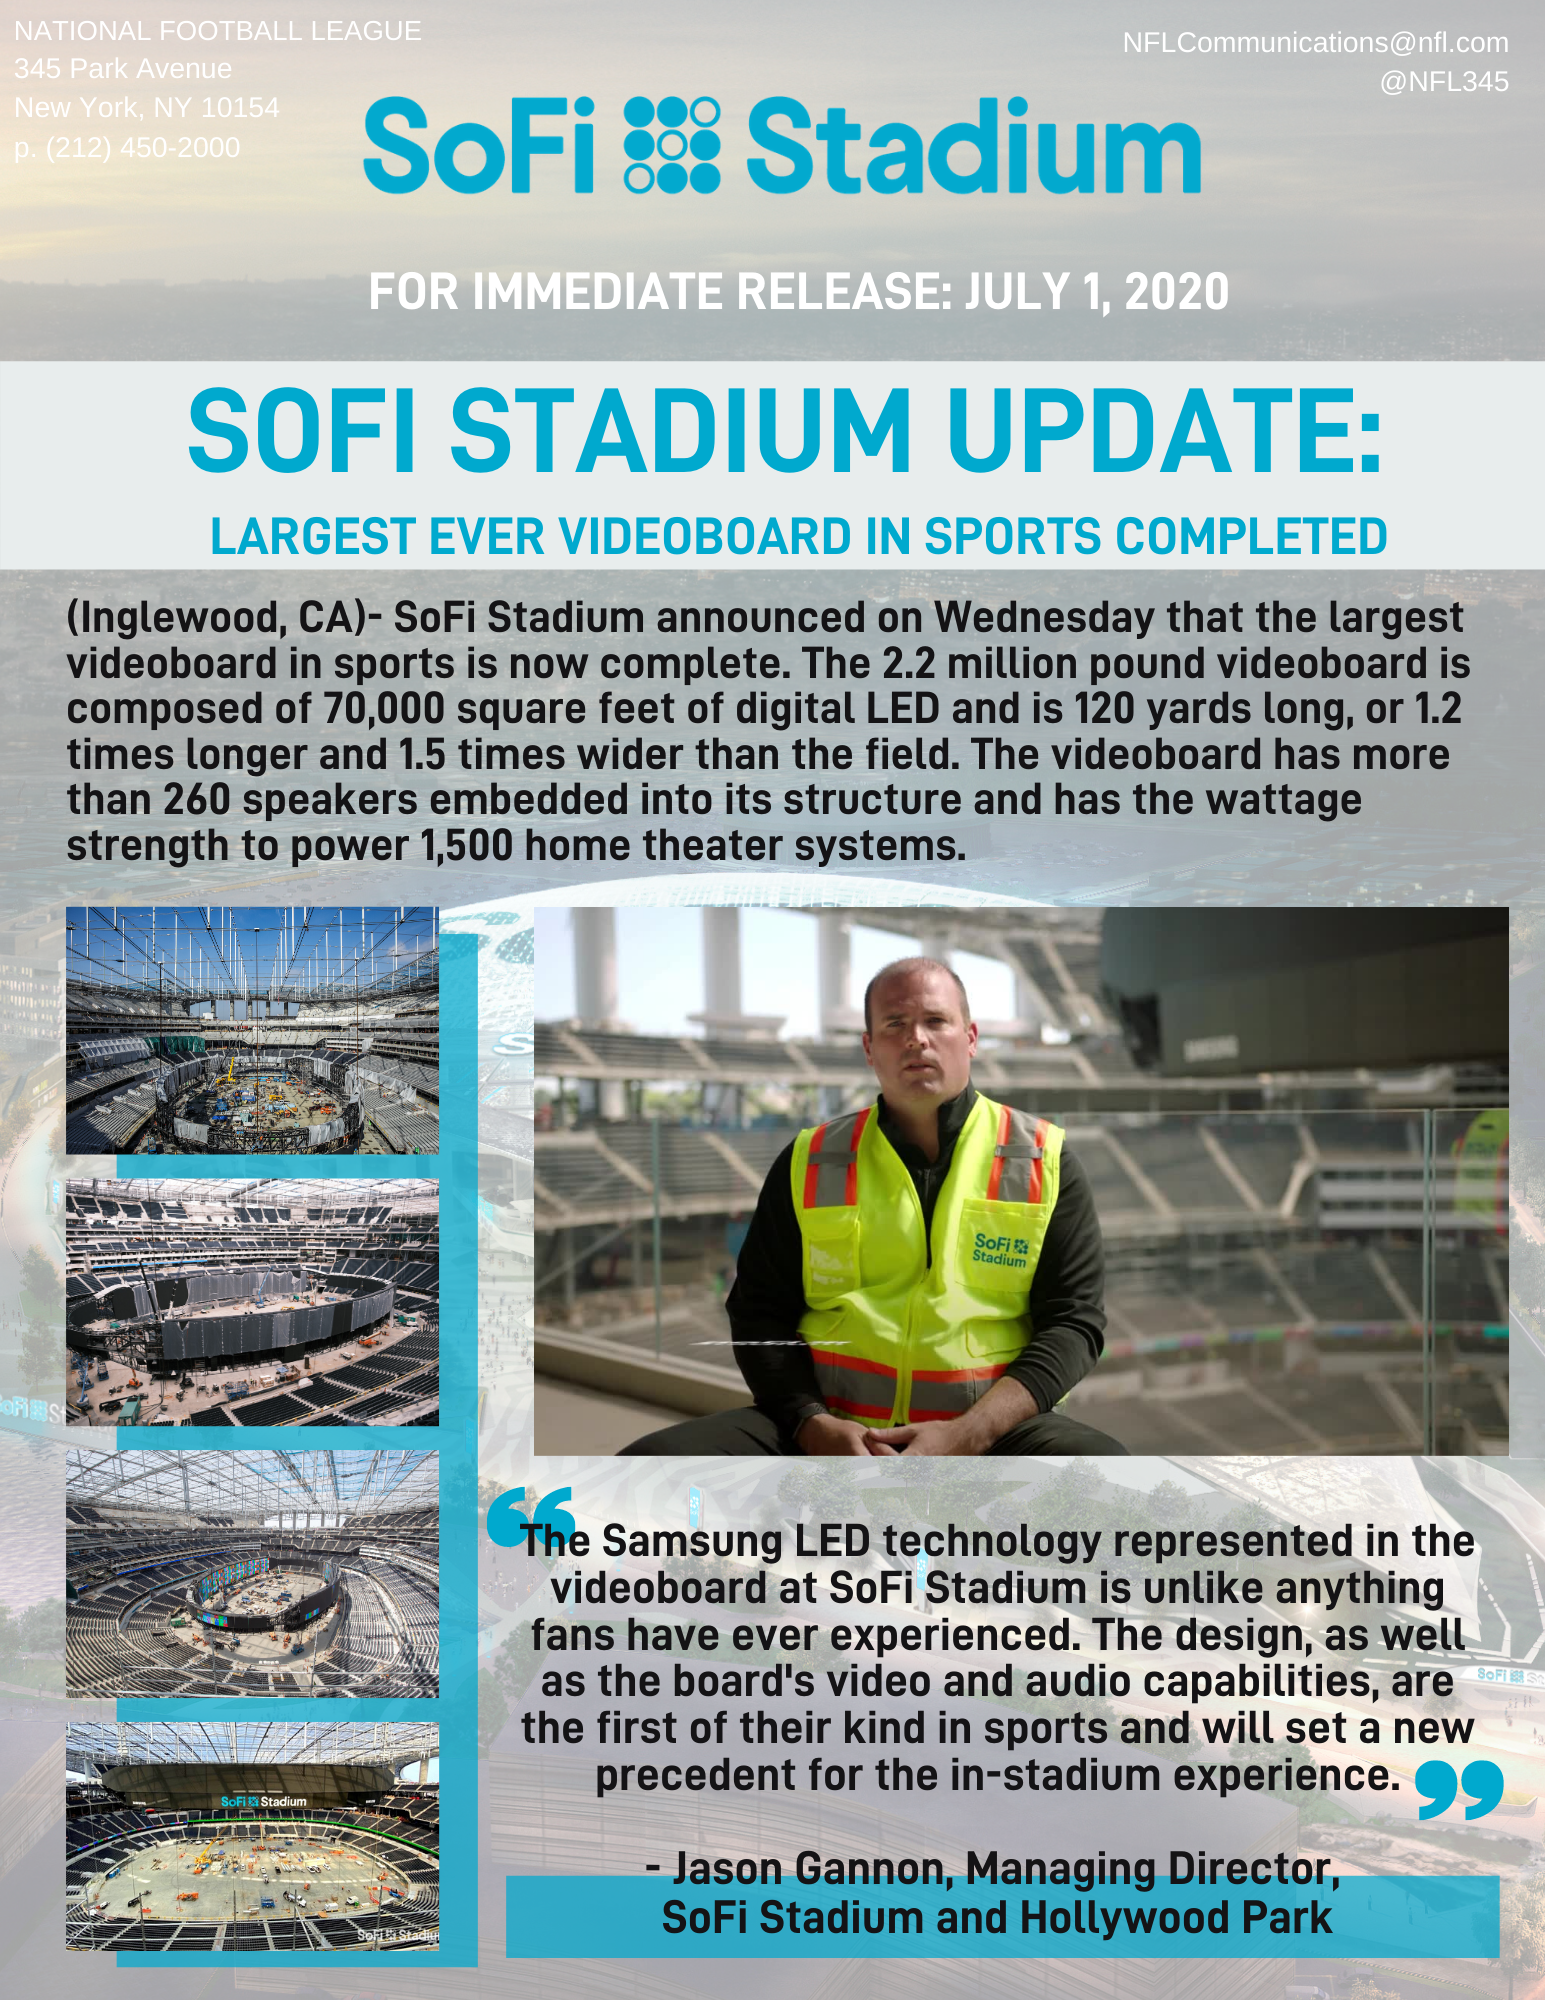 SoFi Stadium Update: Largest Ever Videoboard in Sports Completed